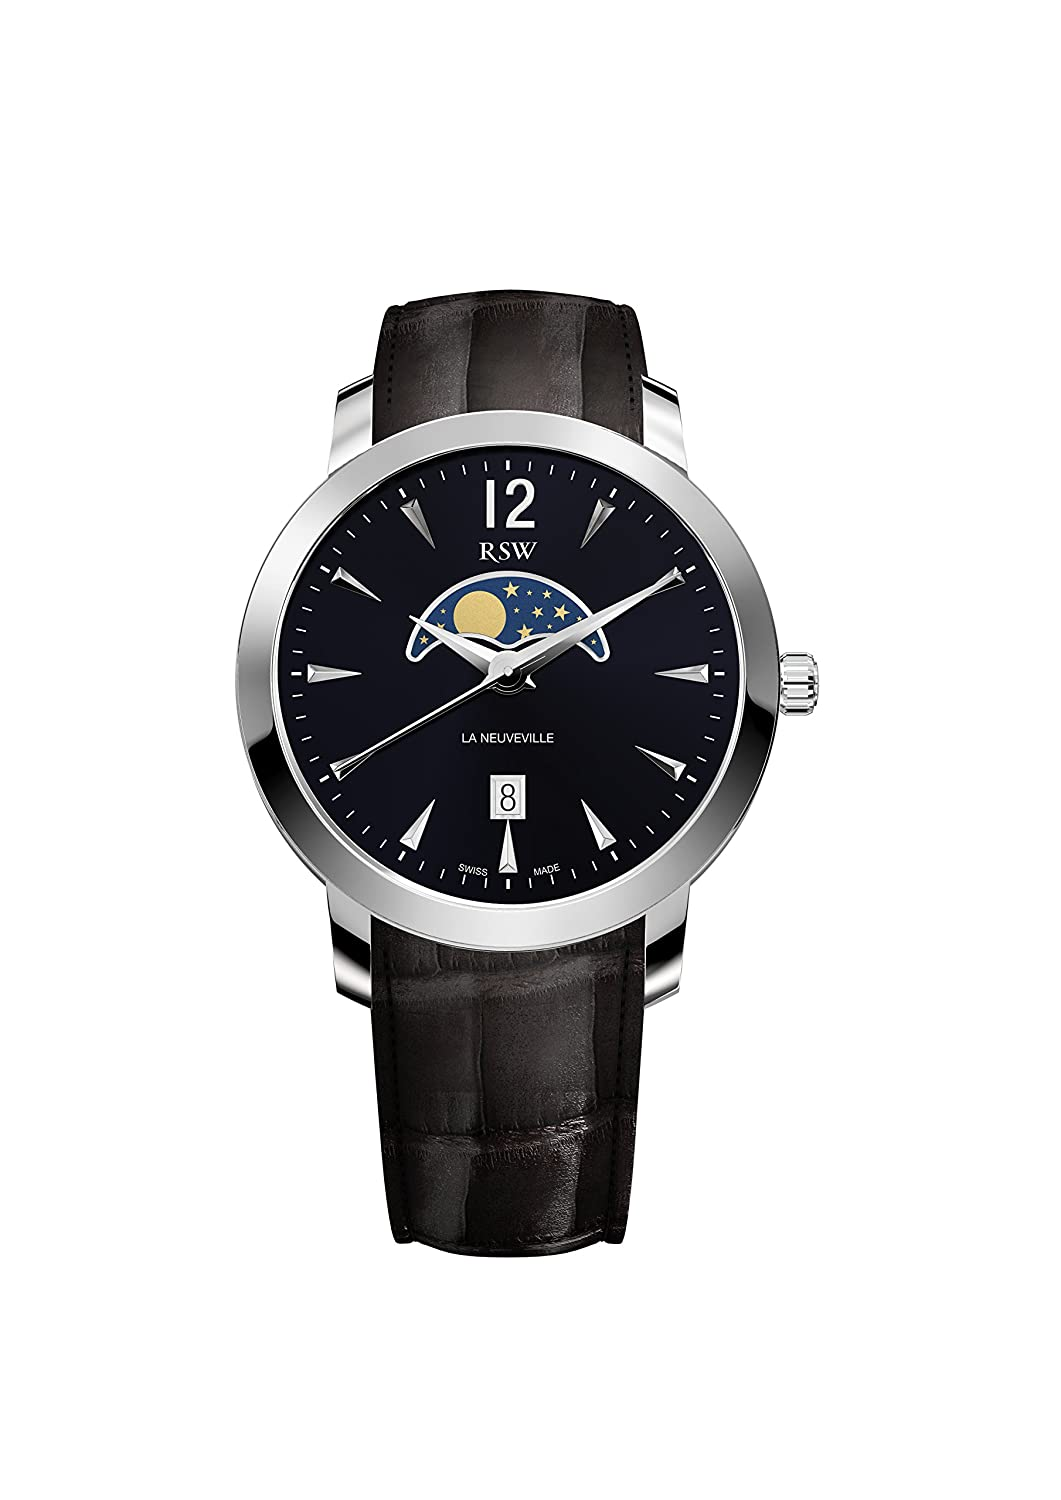 9346. BS. L1.1.00-La Neuveville Moonphase